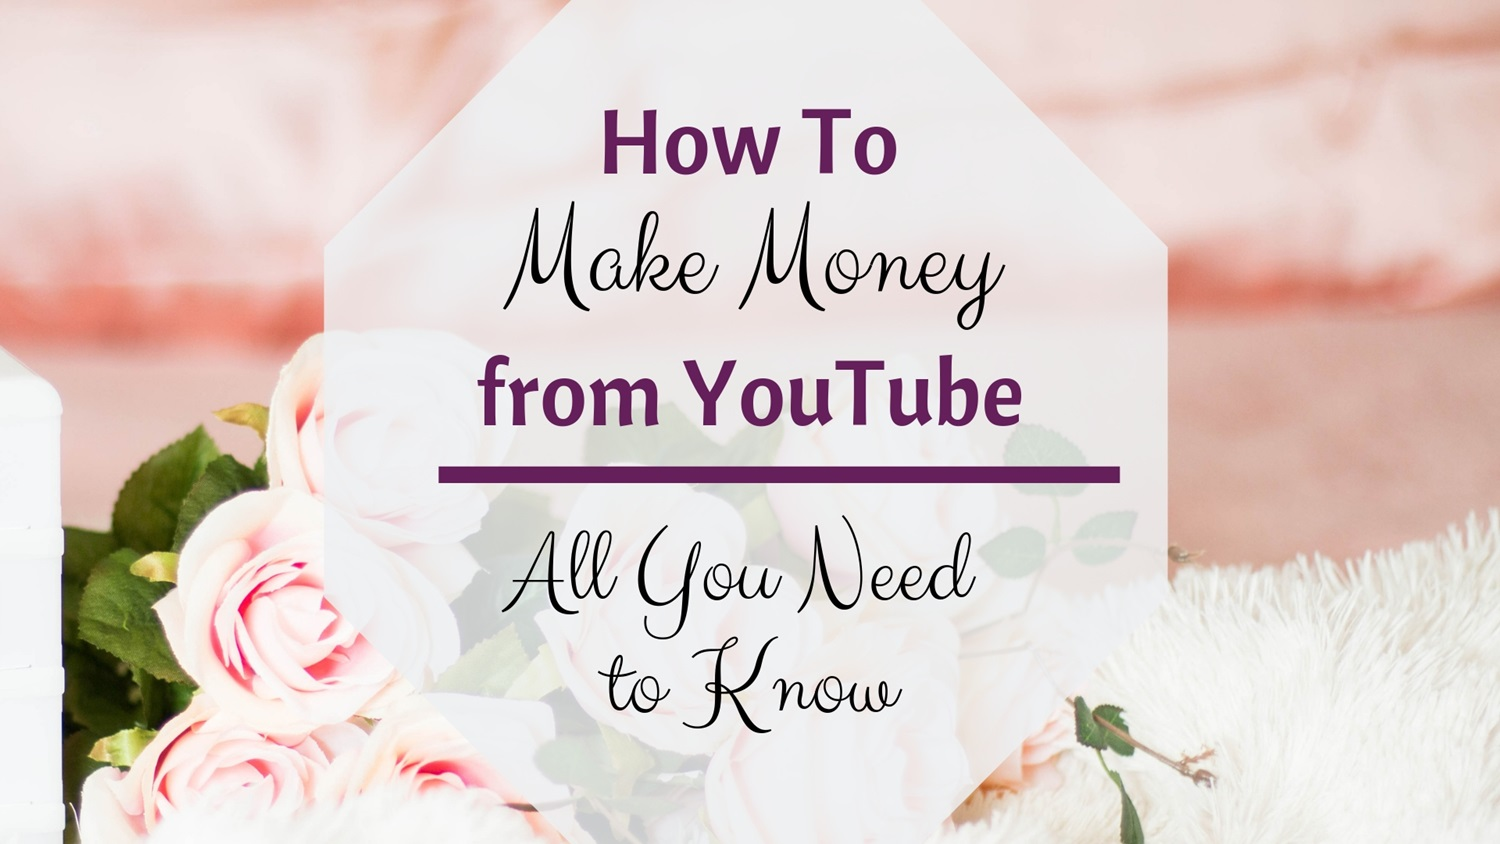 How to Make Money from YouTube - All You Need to Know